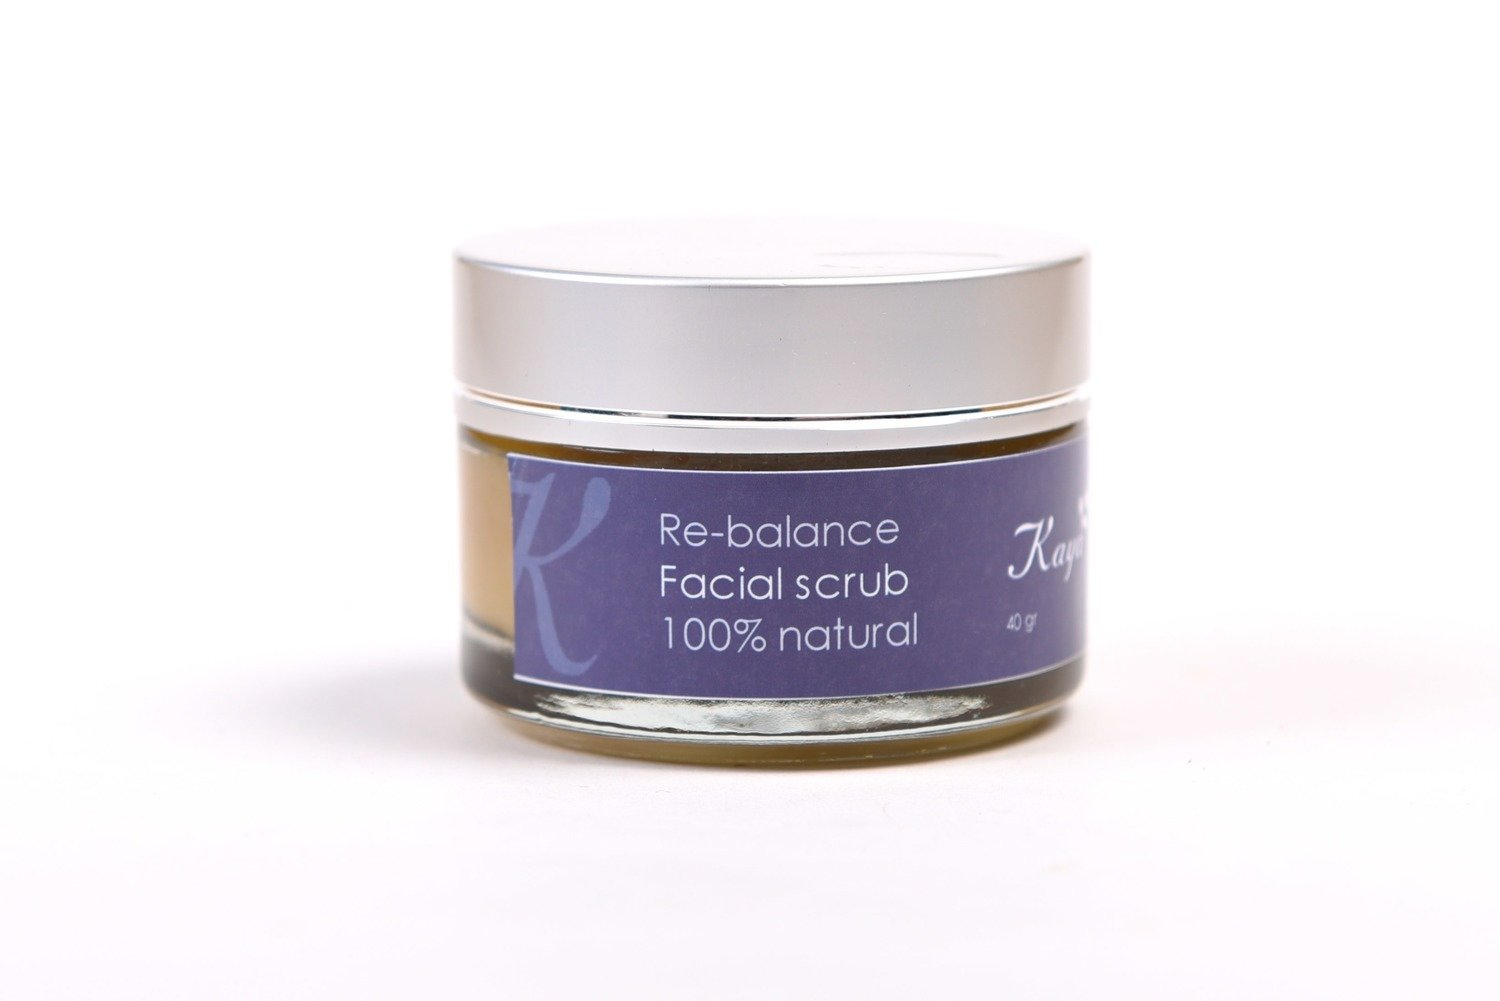 Re-Balance Facial Scrub, 100% Natural